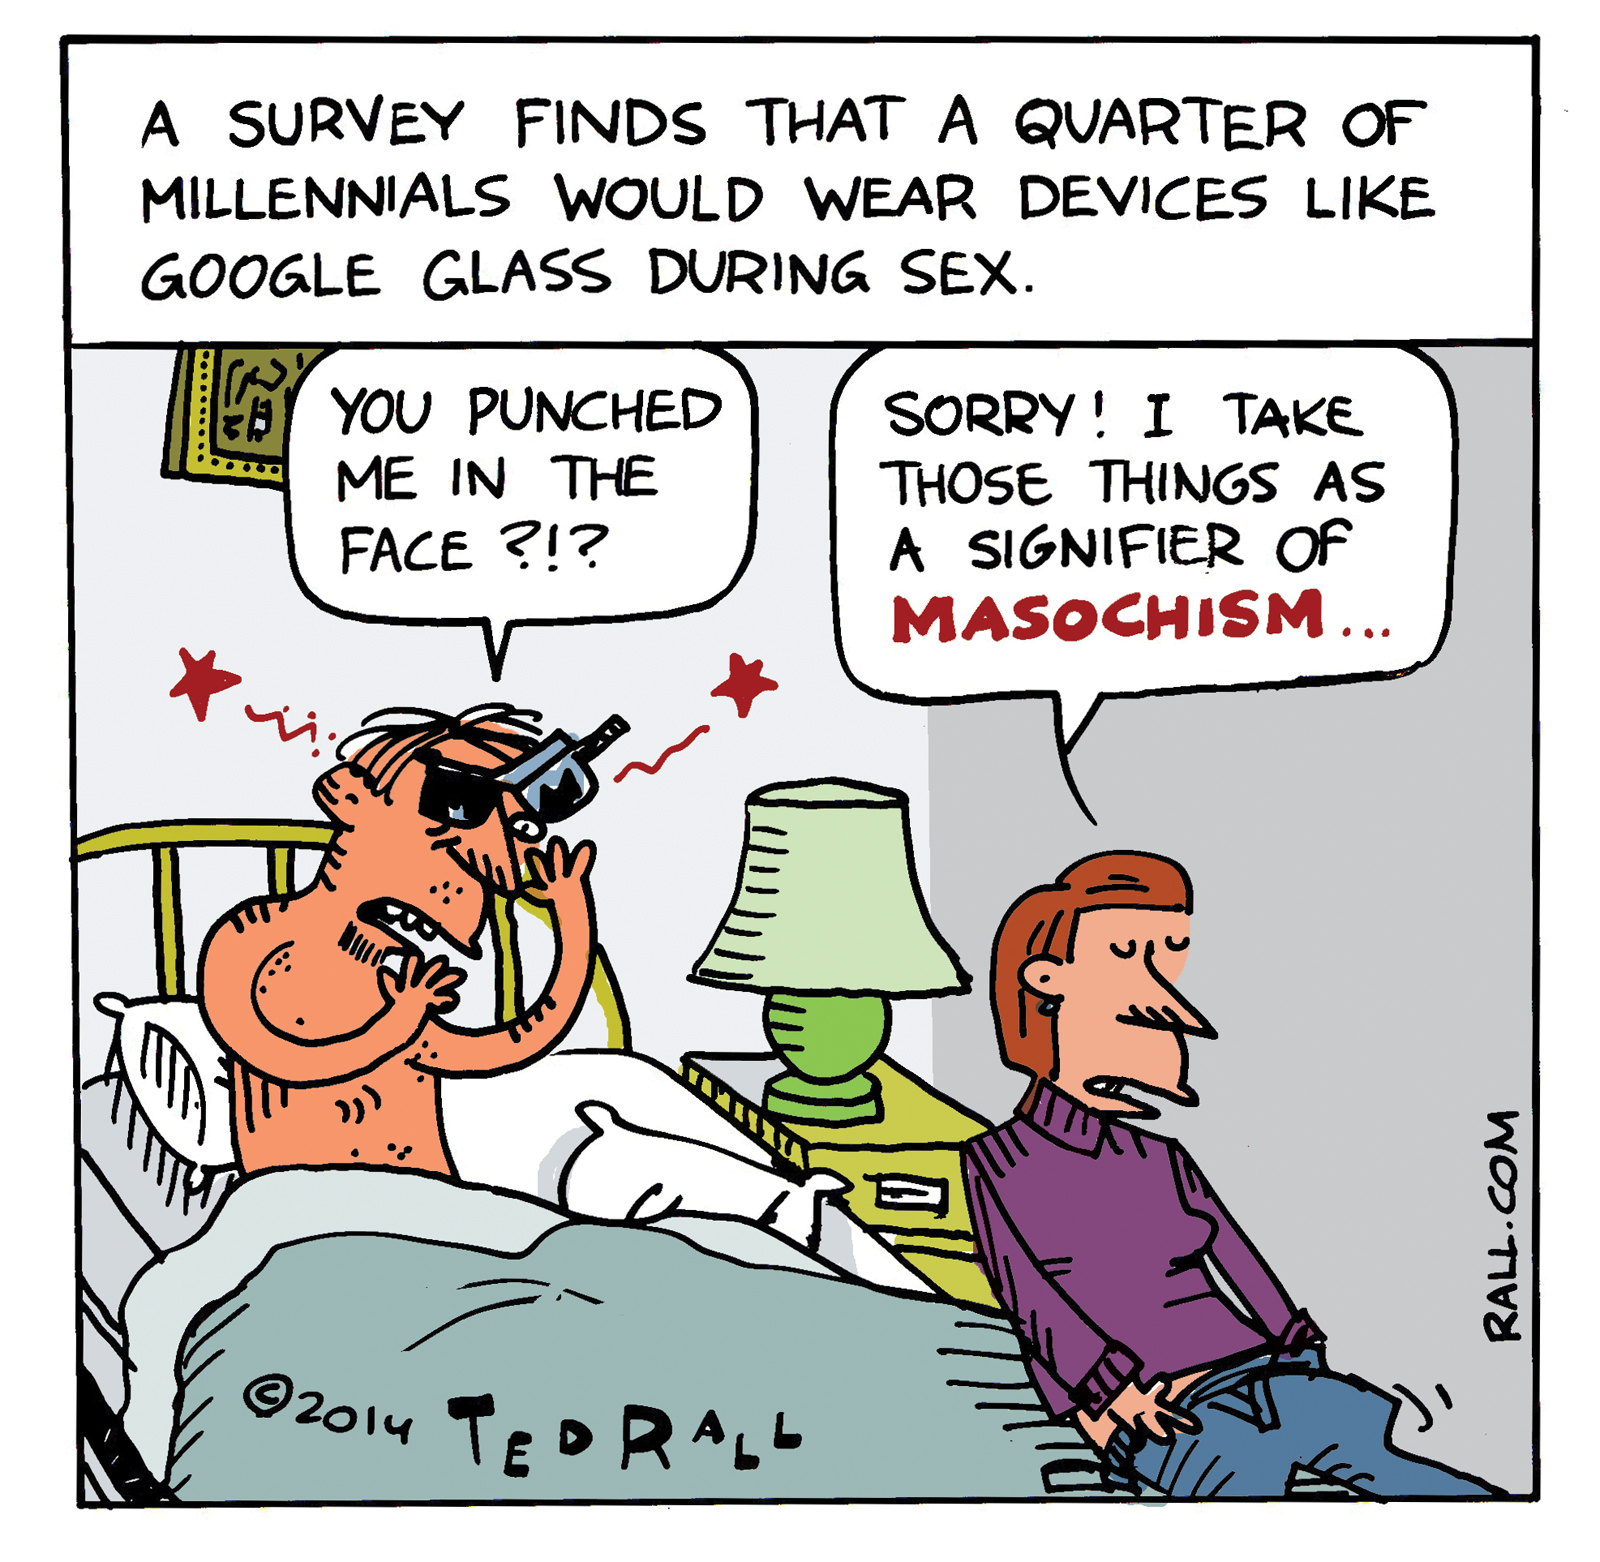 Google Glass During Sex